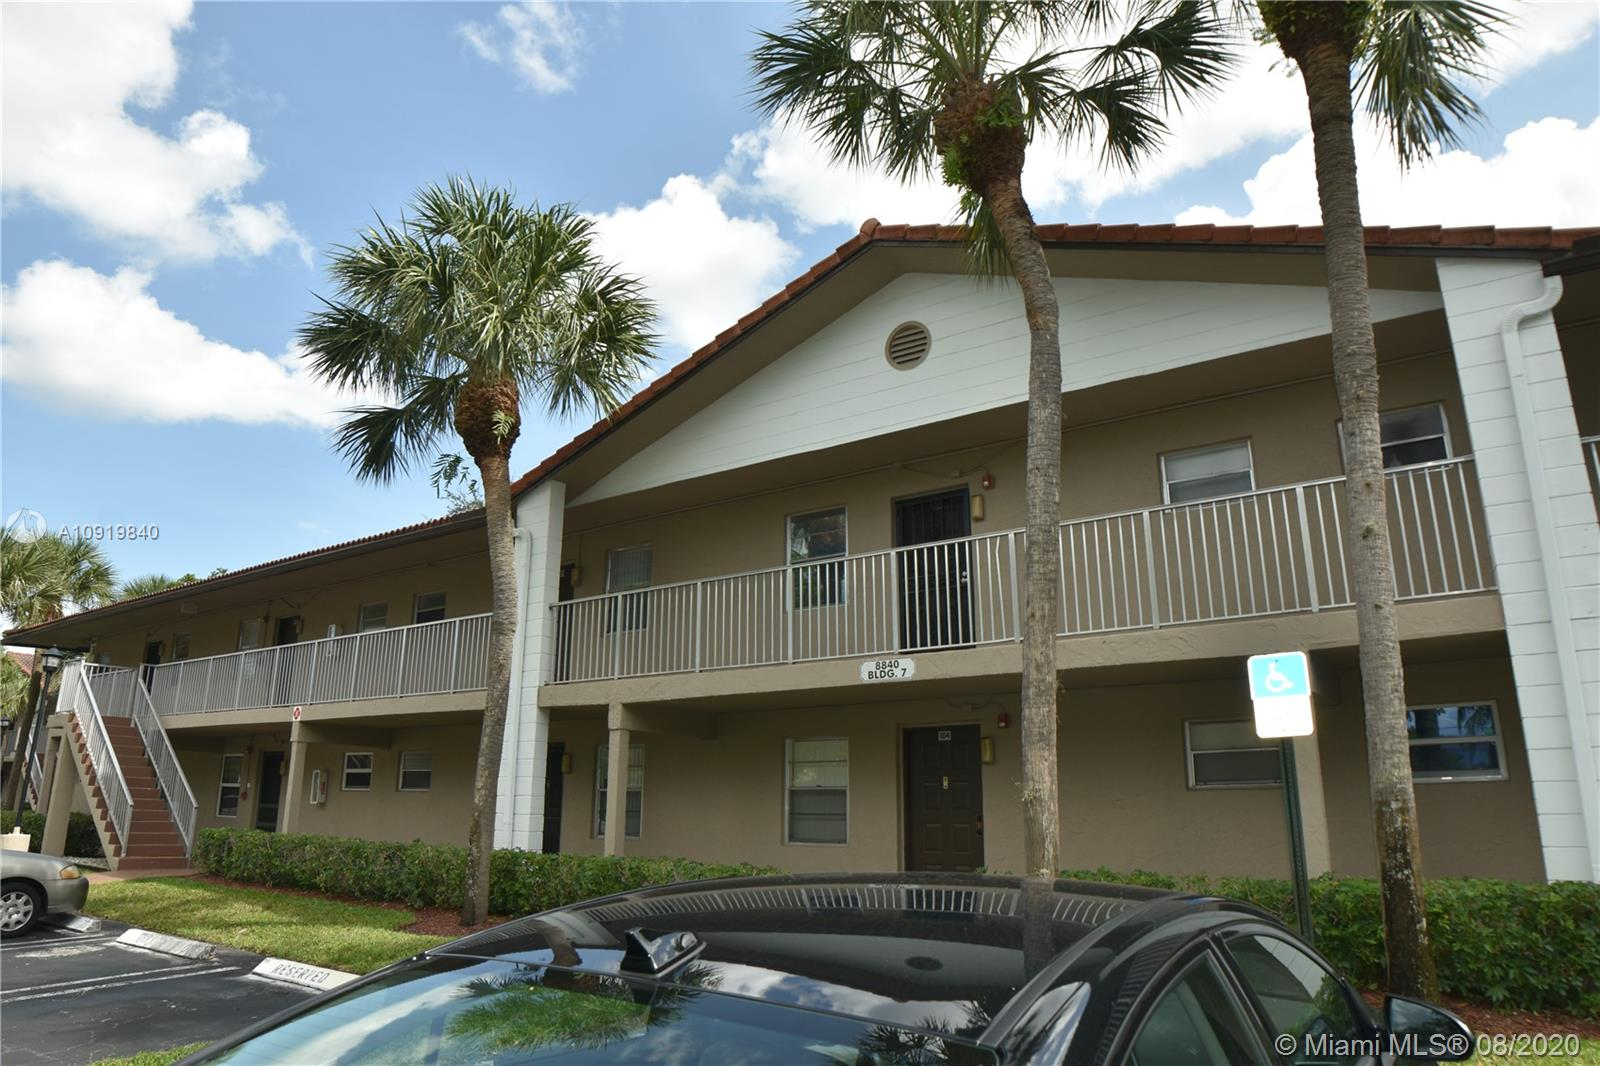 Beautiful condo in the heart of Coral Springs centrally located to major roads, shopping and restaurants. Stunning updated kitchen, fresh paint and carpet ready to move right in. You're not going to find a better deal than this in Coral Springs. Hurry, will not last. Easy to show. Hit show assist for instructions.